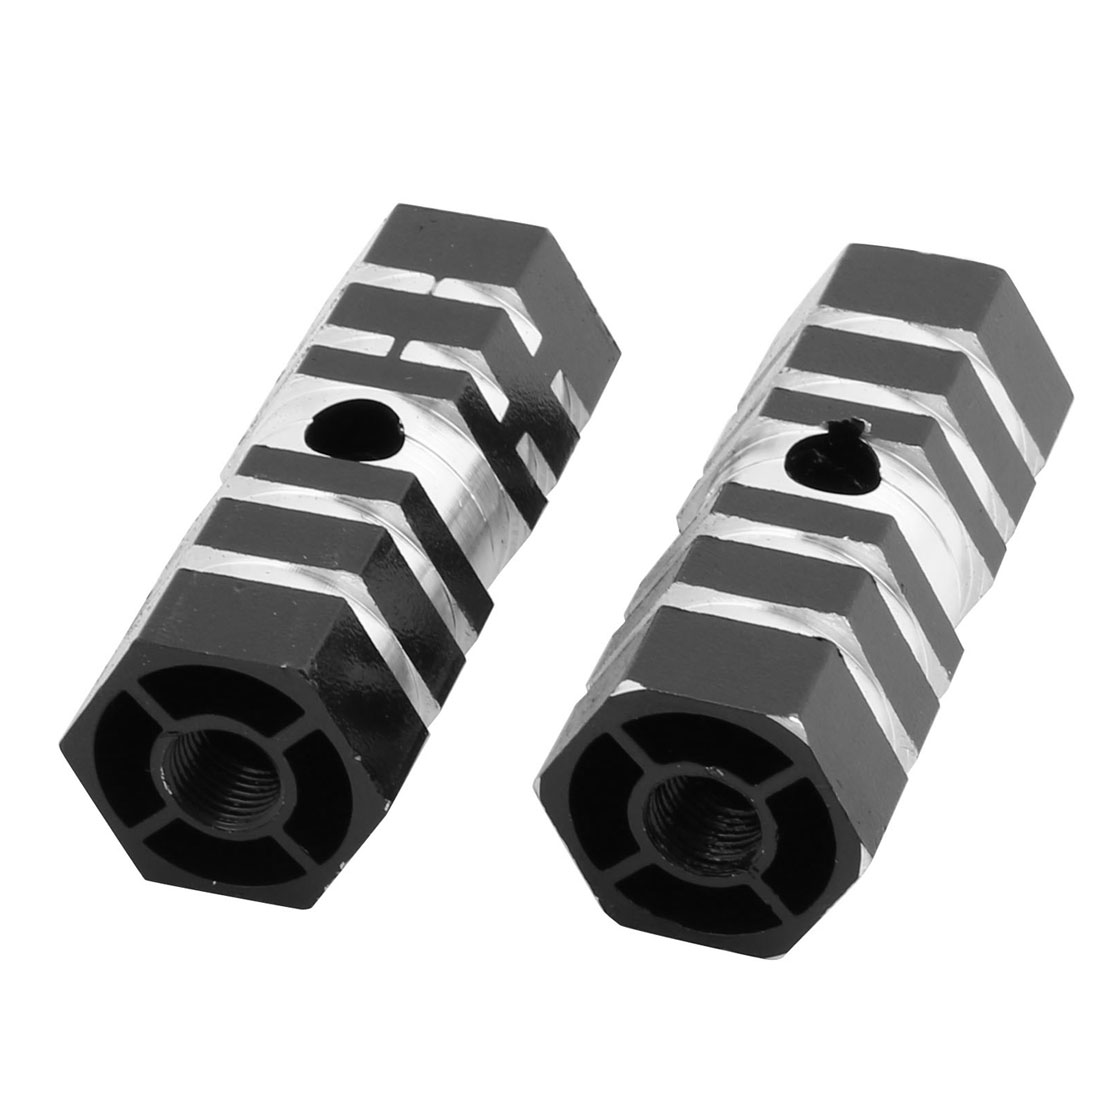 Pair 9mm Dia Female Thread Aluminum Alloy Foot Pegs Black for Bicycle Cycling